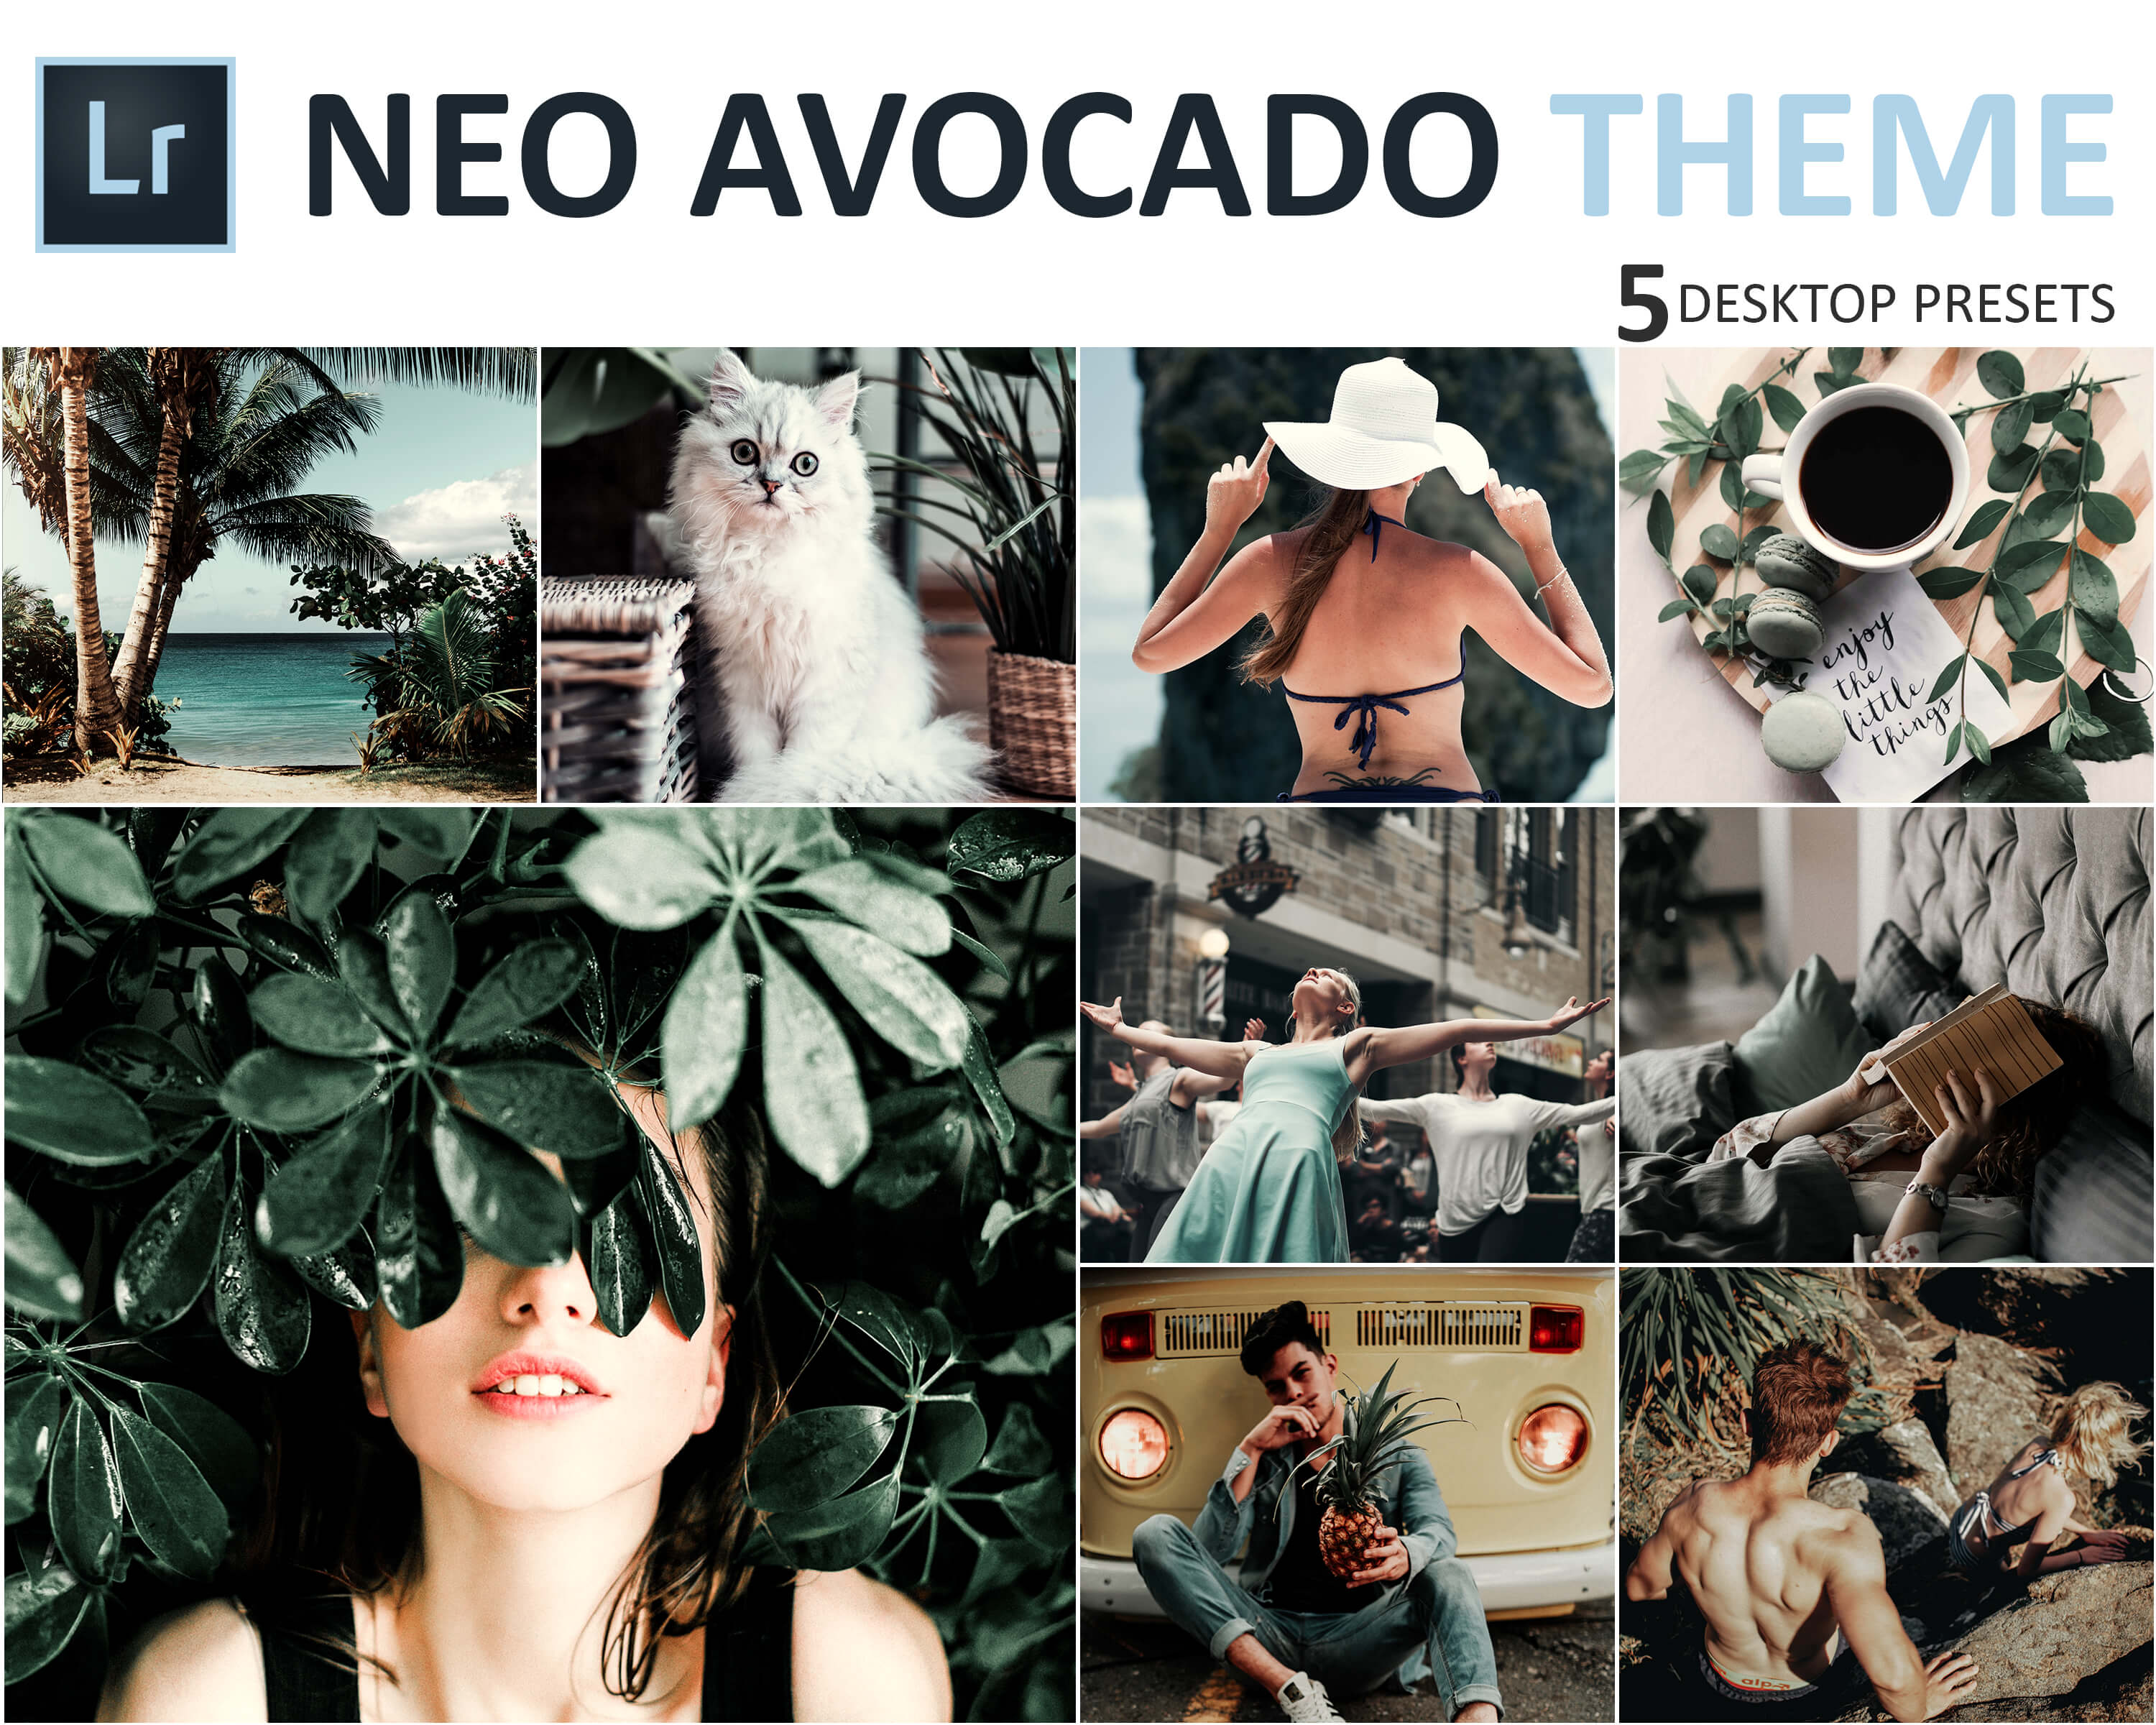 Neo Avocado Theme Desktop Lightroom Presets